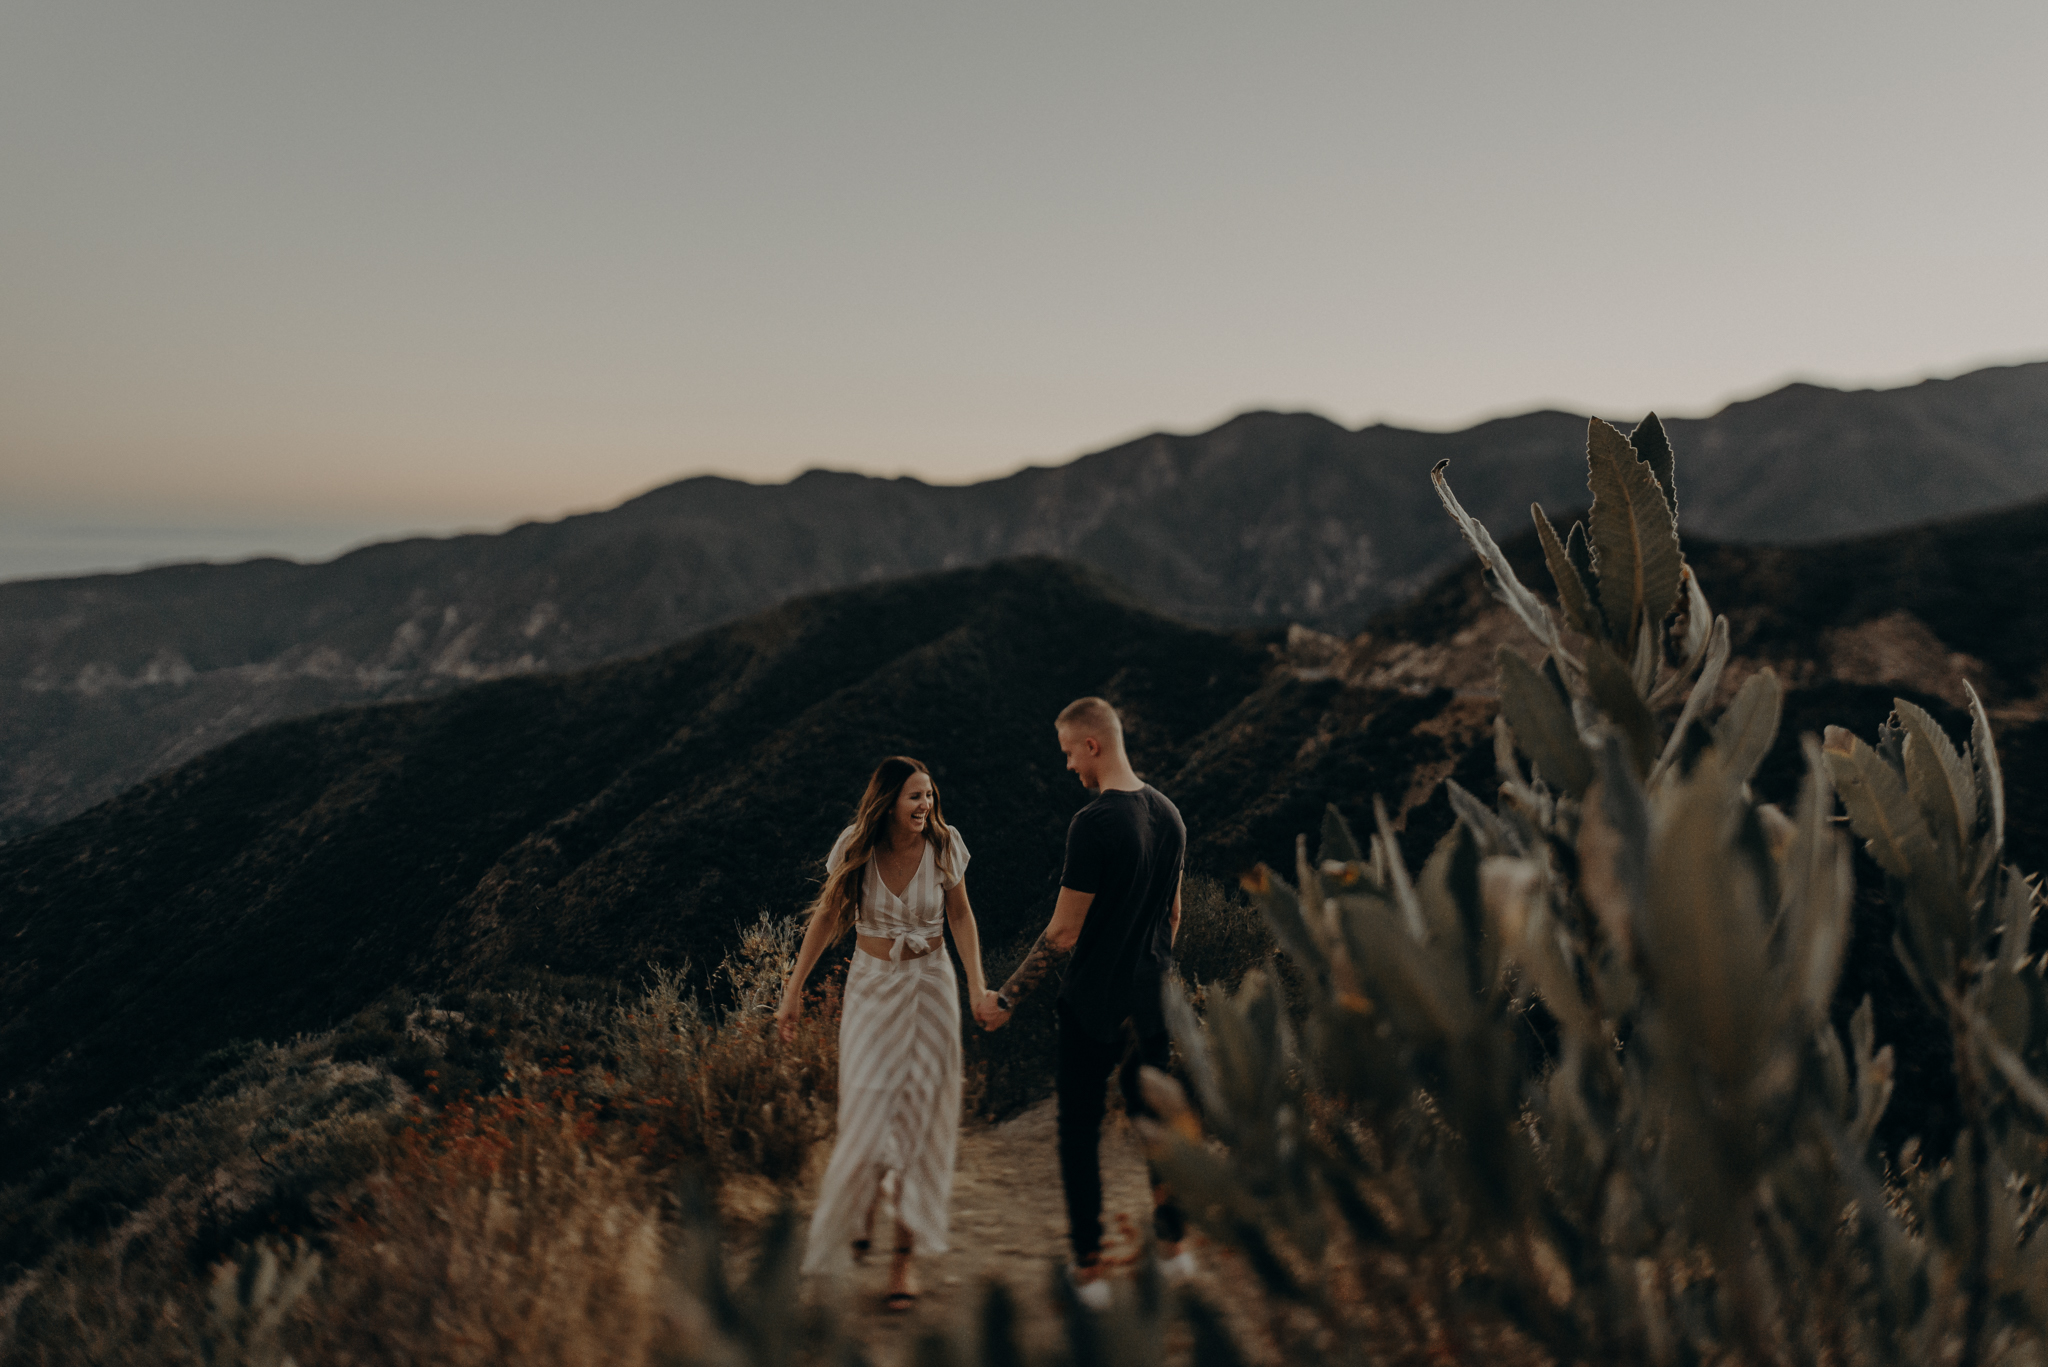 Isaiah + Taylor Photography - Los Angeles Forest Engagement Session - Laid back wedding photographer-041.jpg